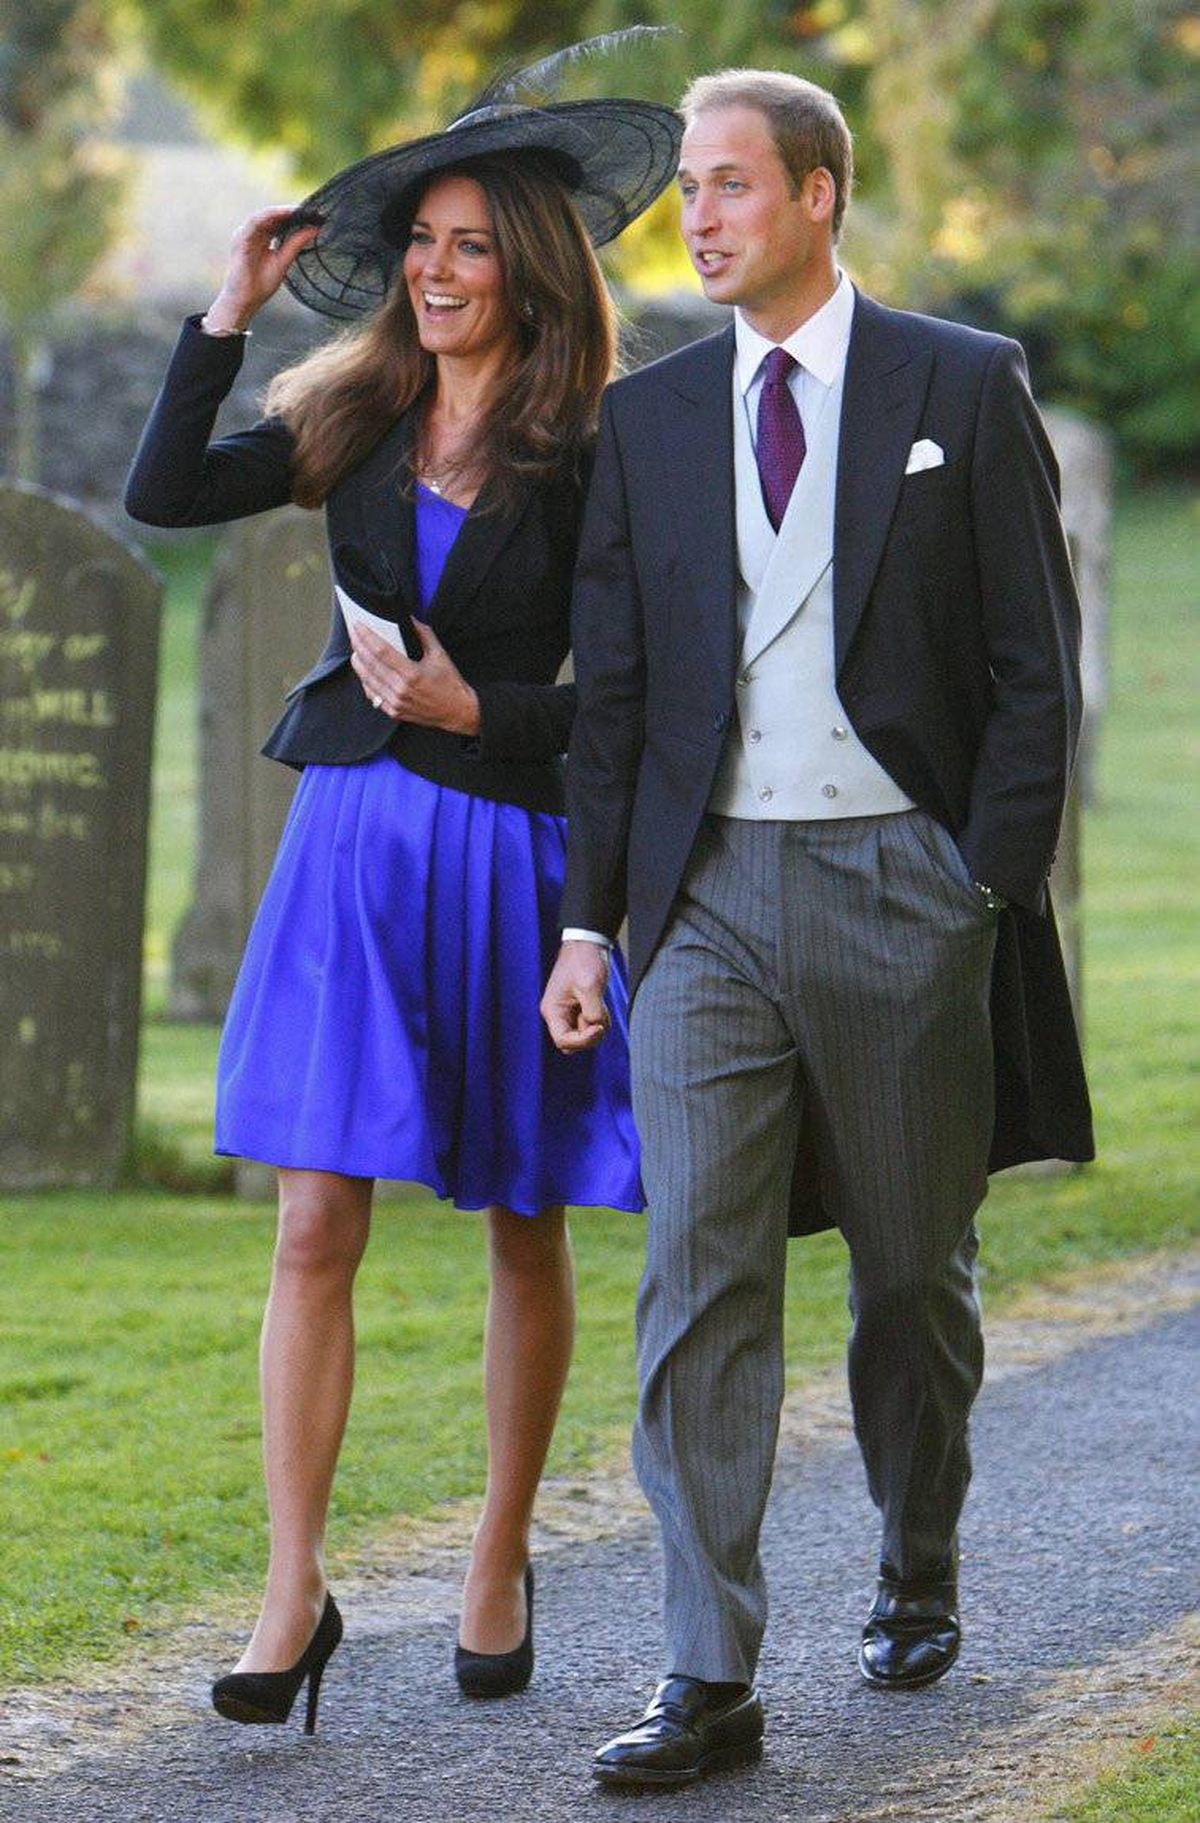 Prince William and Kate Middleton leave the wedding of their friends Harry Mead and Rosie Bradford in the village of Northleach, England.